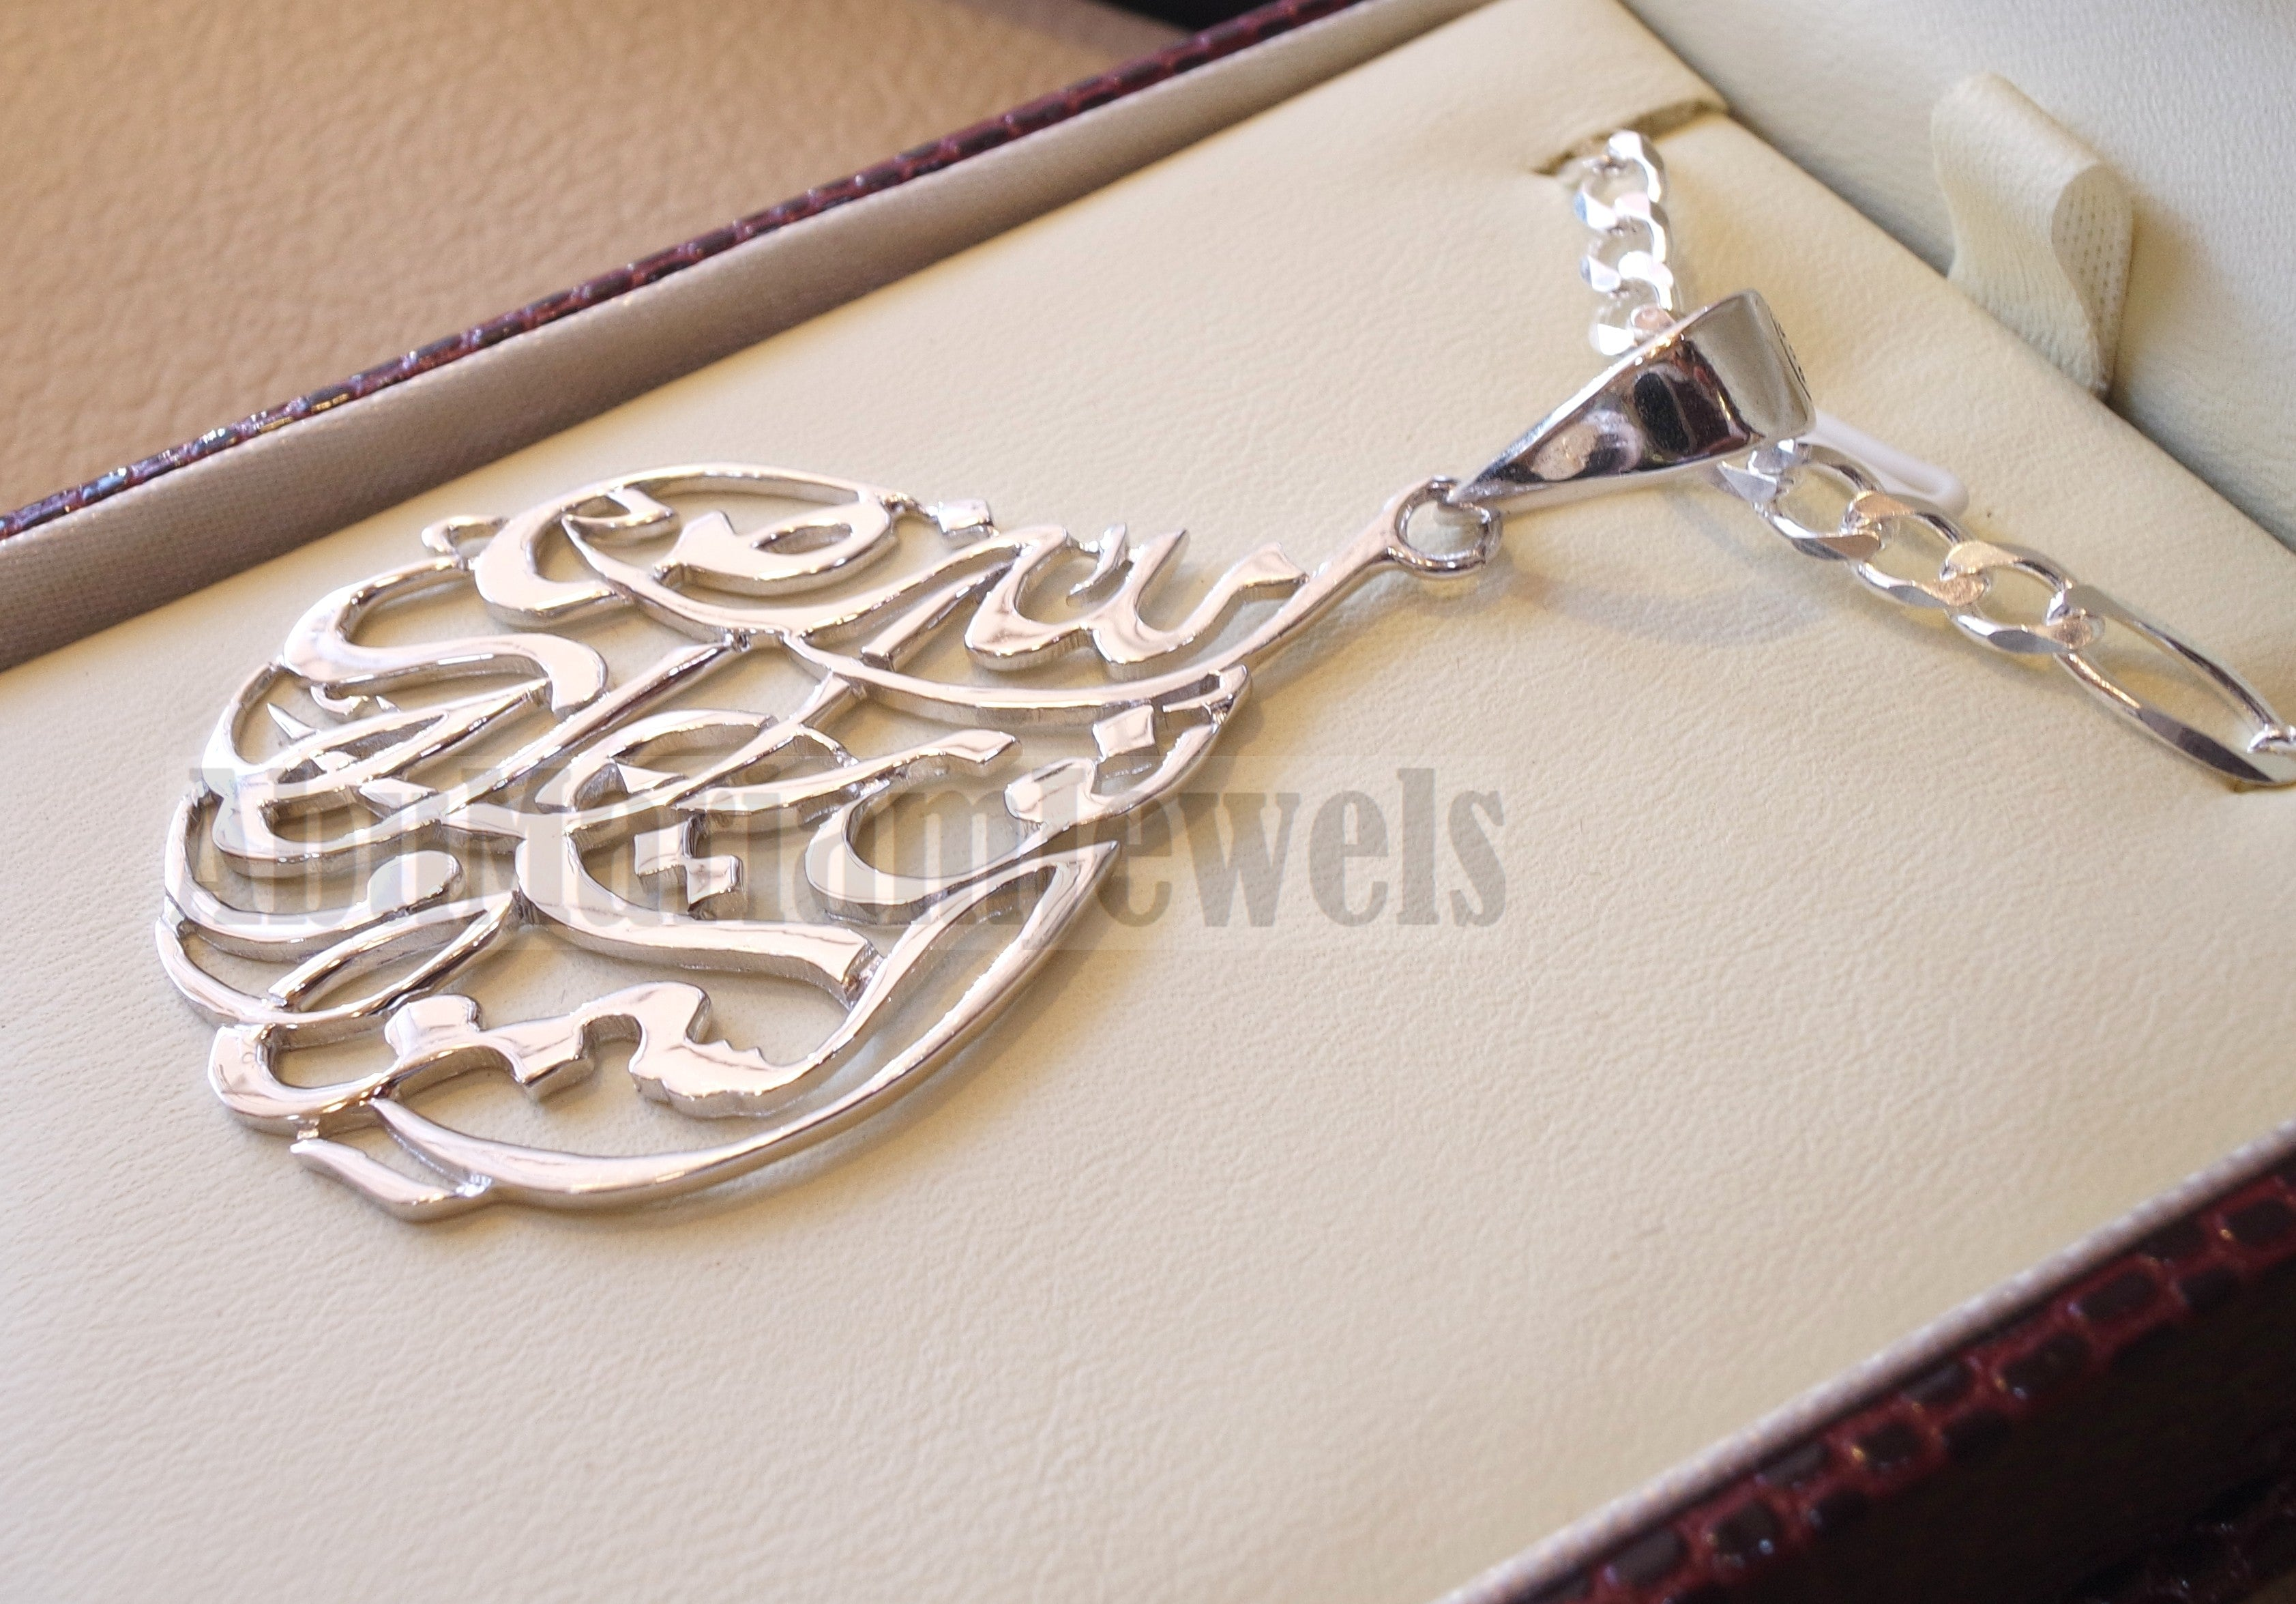 Allah noor Alsamawat quraan verses handmade calligraphy sterling silver 925 pear necklace thick chain islamic arabic اسلام الله